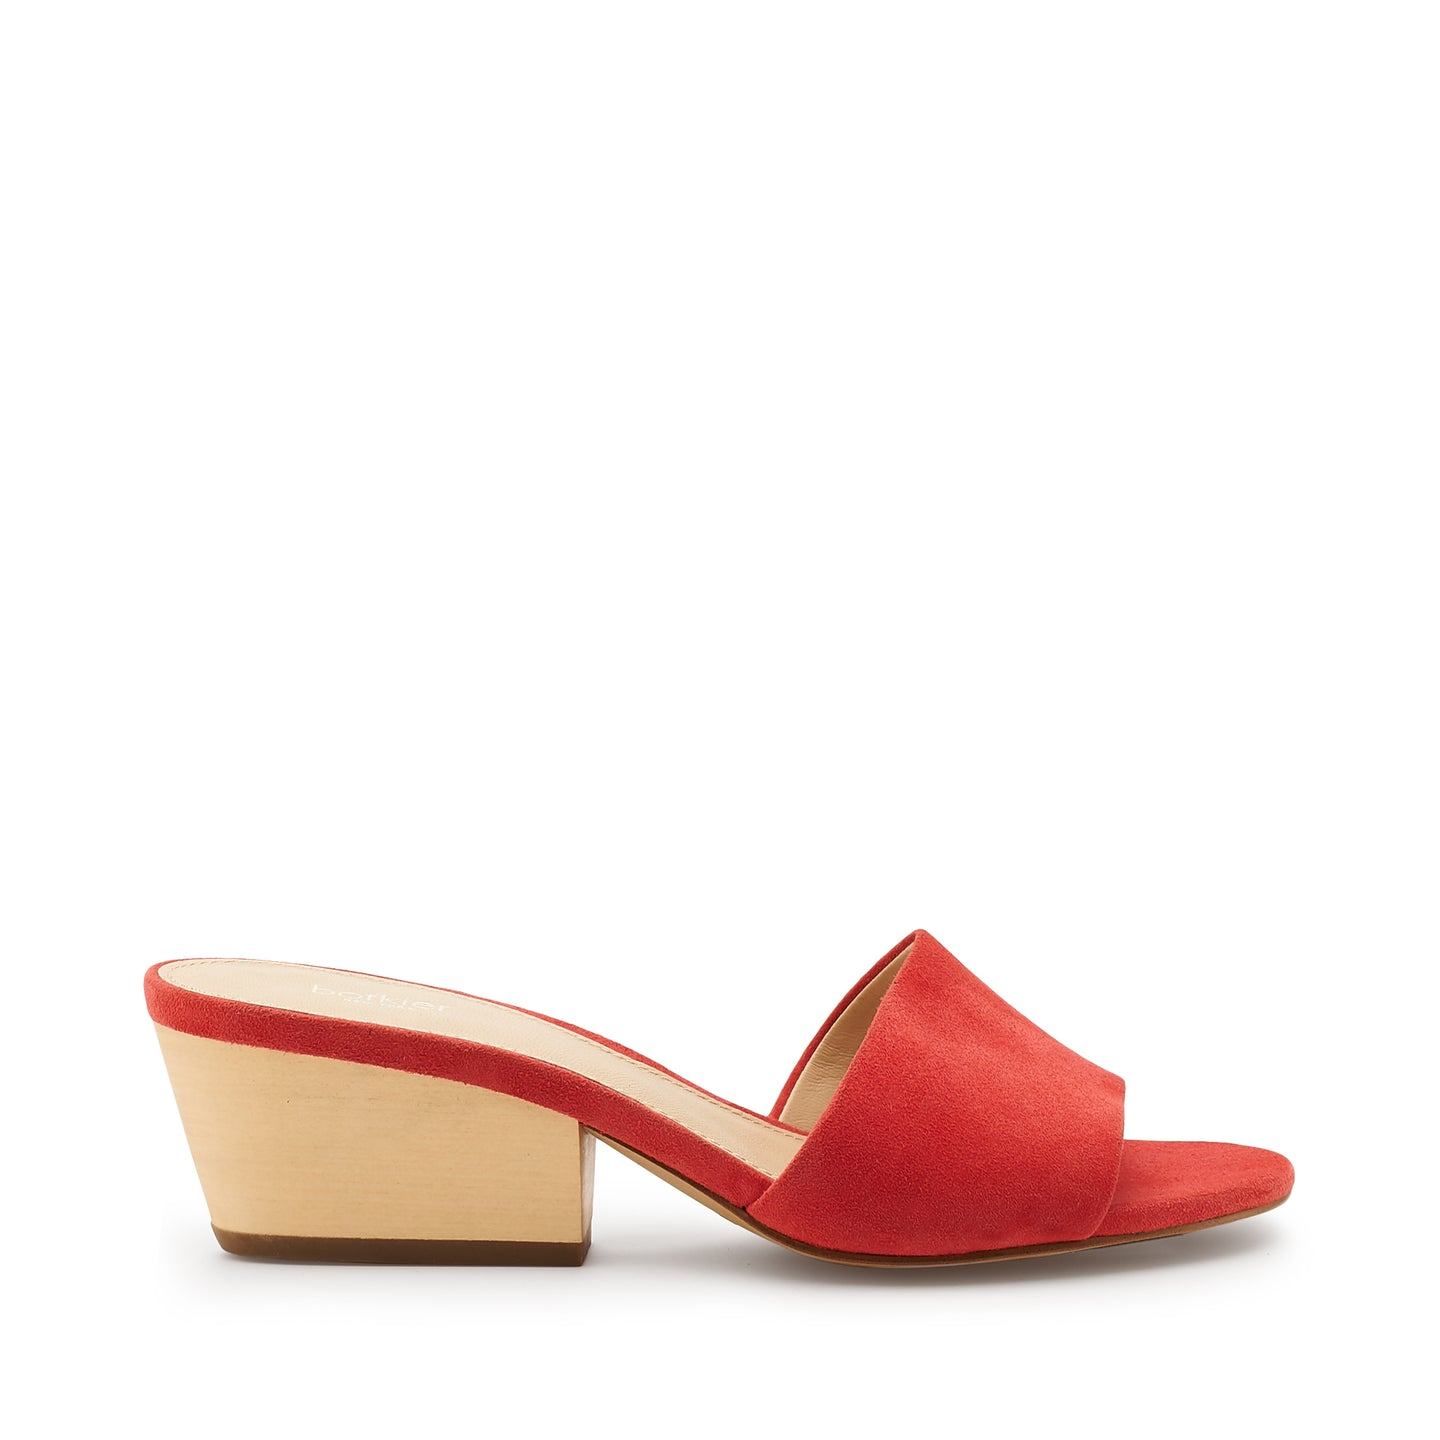 botkier carlie wood low heel slip on sandal mule in coral orange